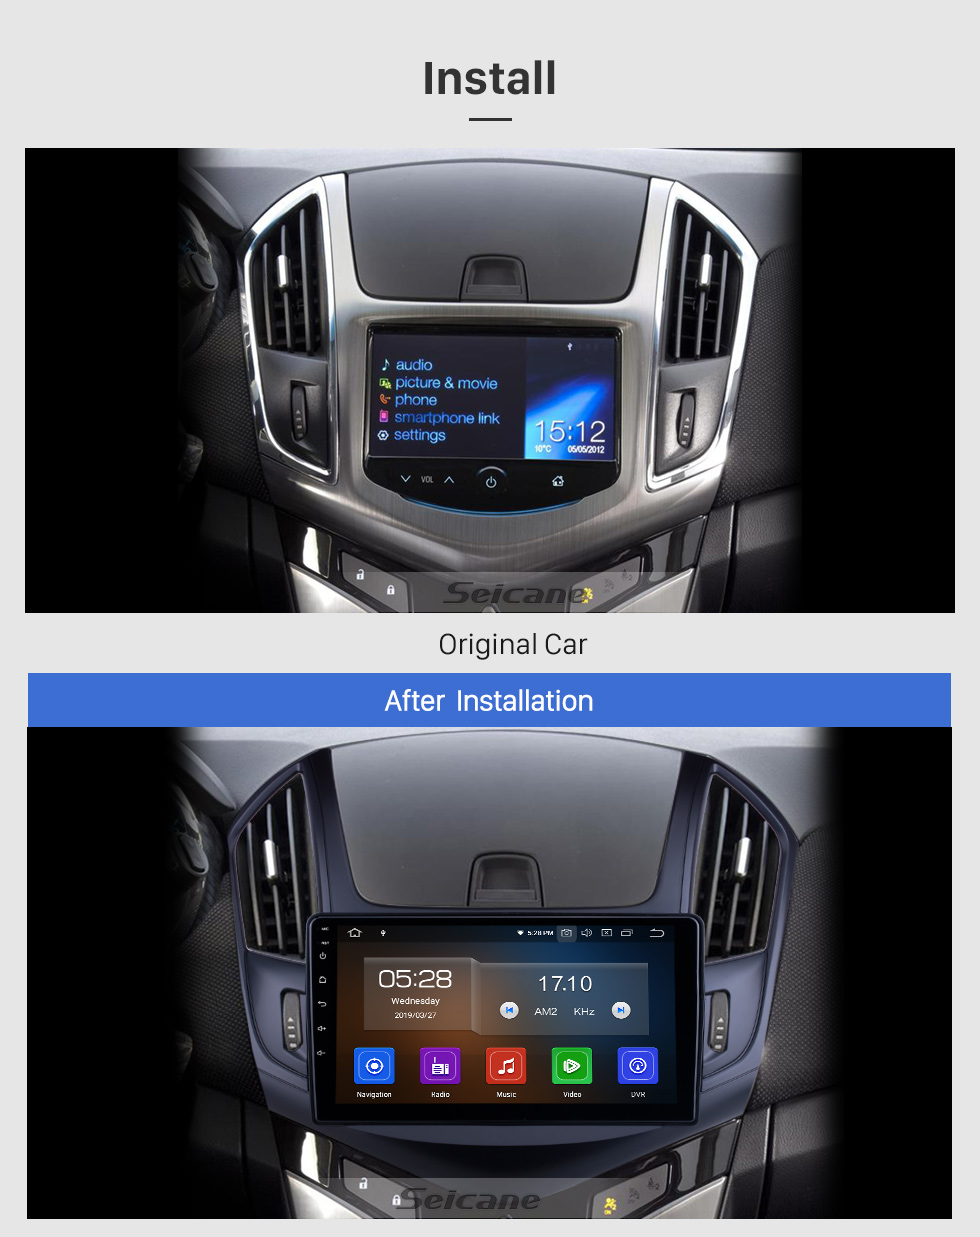 Seicane HD Touchscreen 9 inch for 2013 Chevy Chevrolet Cruze Radio Android 10.0 GPS Navigation System Bluetooth Carplay support TPMS DSP